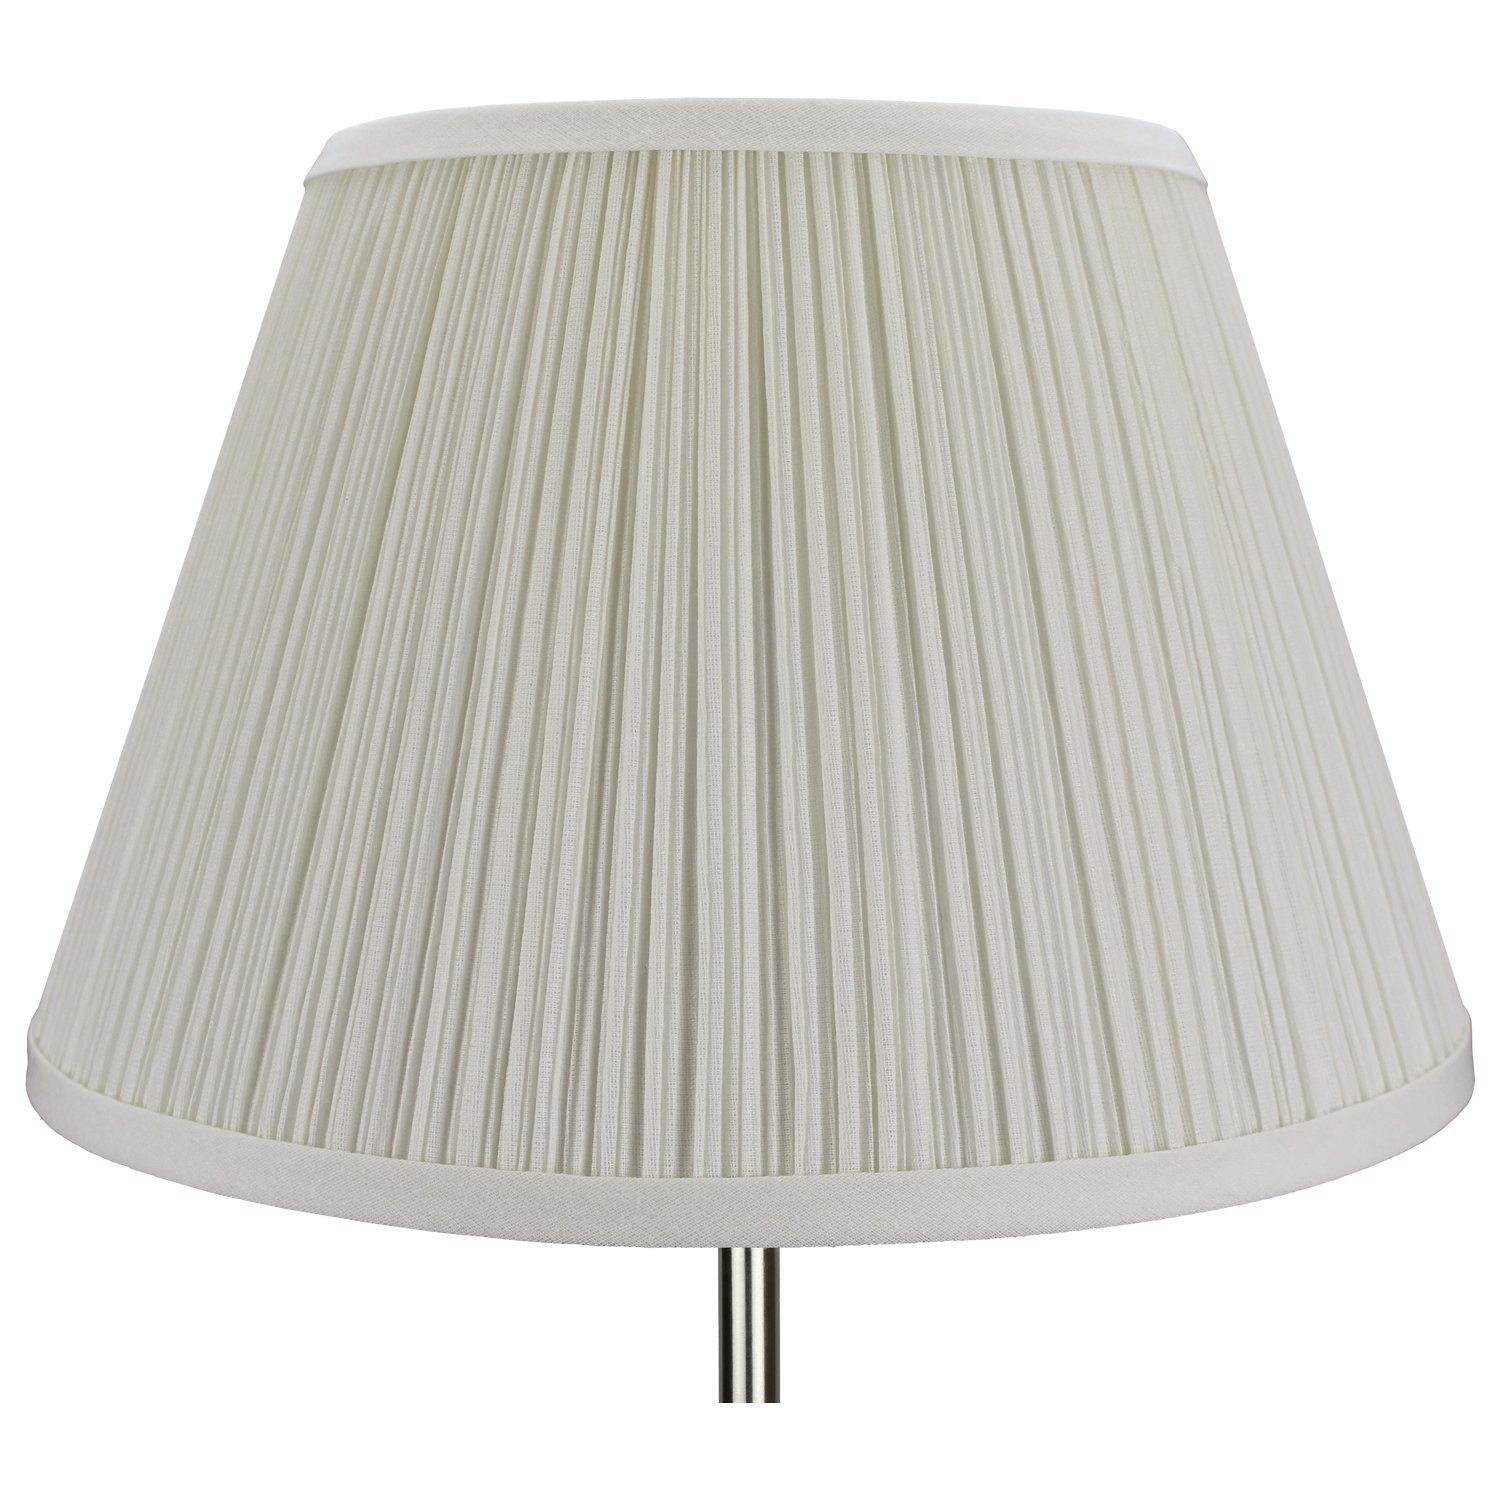 Cheap mushroom lamp shade find mushroom lamp shade deals on line at get quotations lamp shade 7 top 12 bottom 8 slant height pleated aloadofball Images